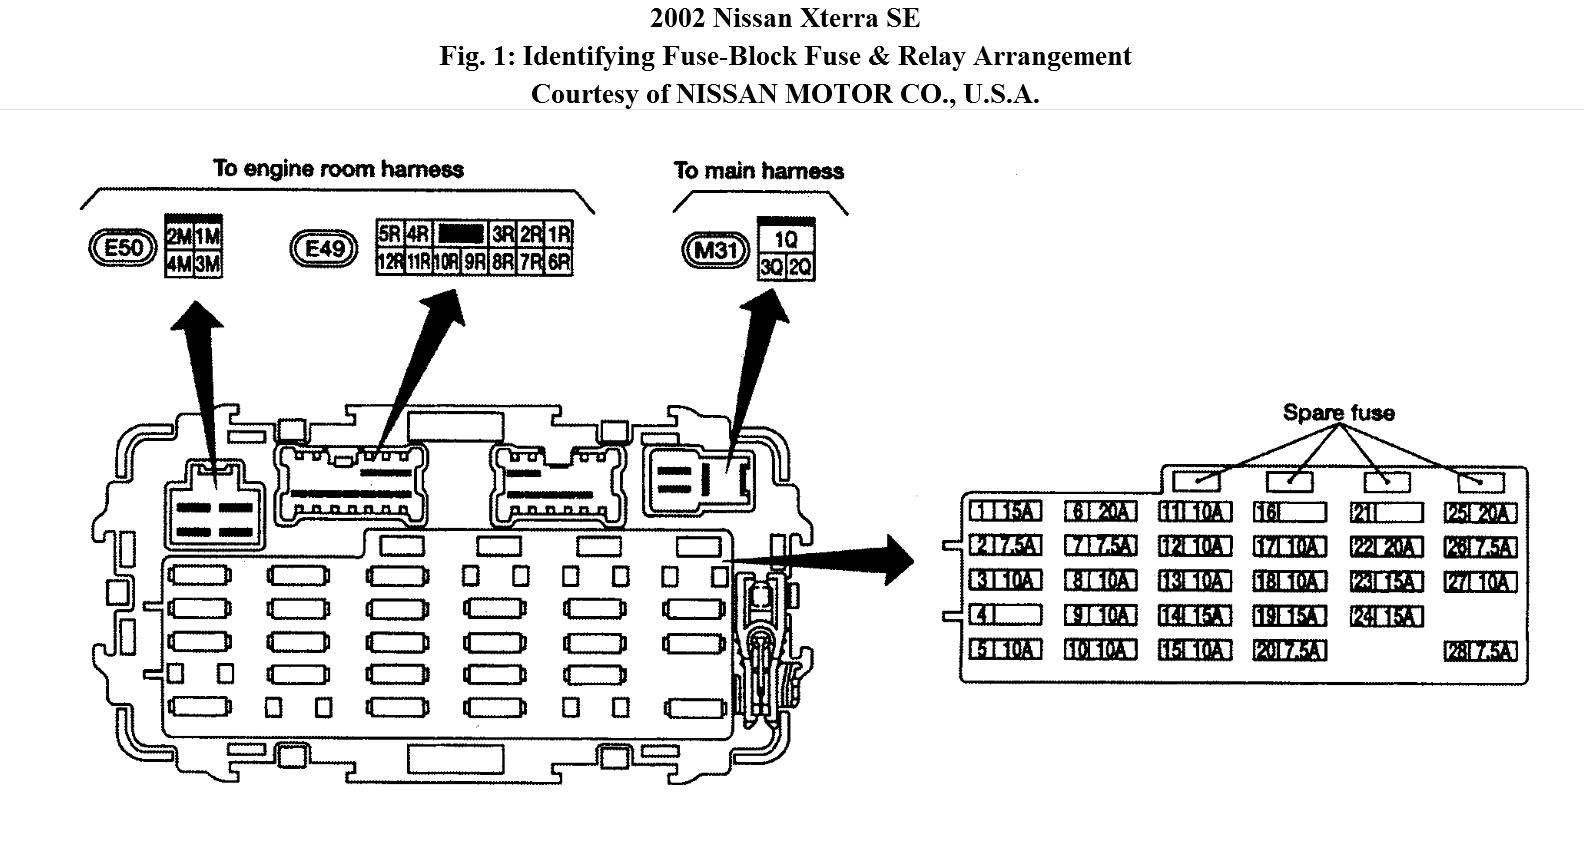 01 Xterra Fuse Box List Of Schematic Circuit Diagram \u2022 Nissan Xterra  Fuse Box Diagram 2001 Xterra Fuse Box Diagram